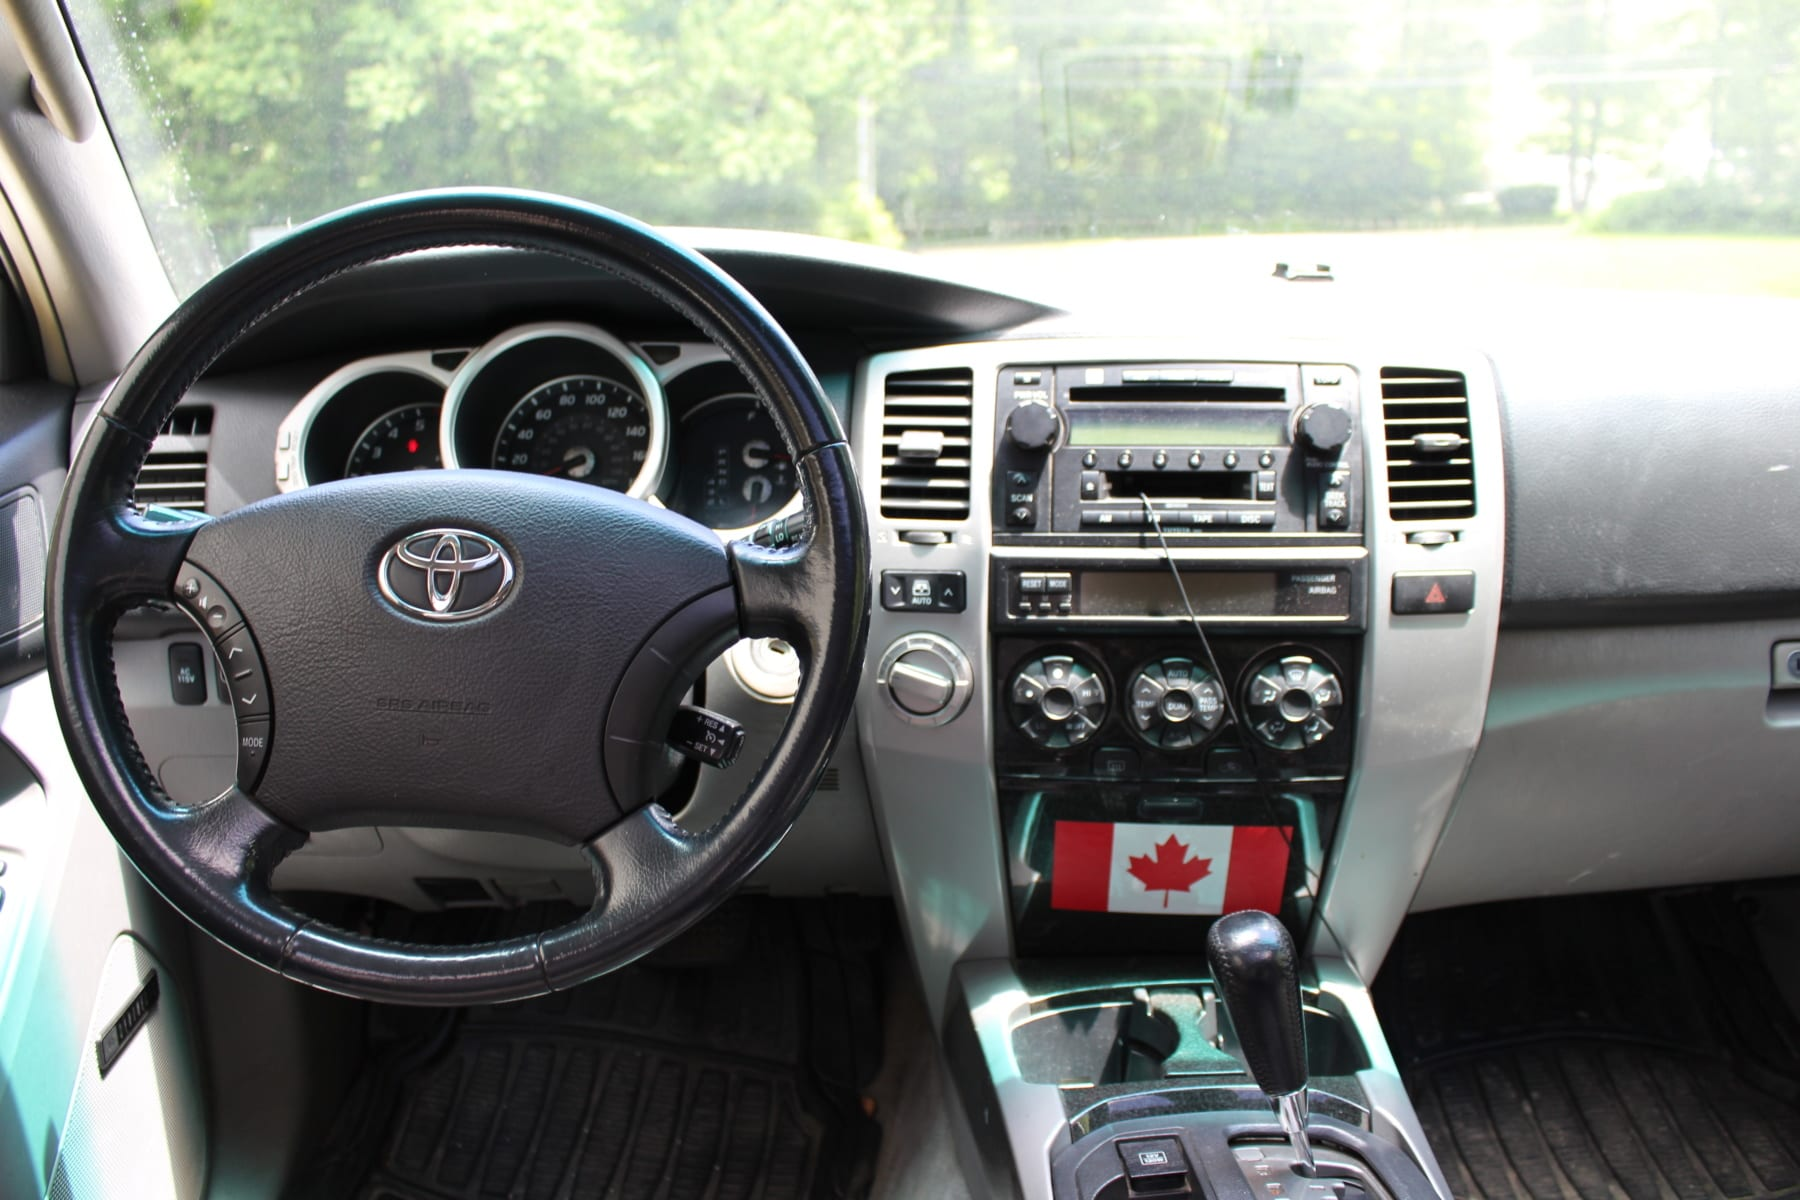 4th gen 4Runner interior